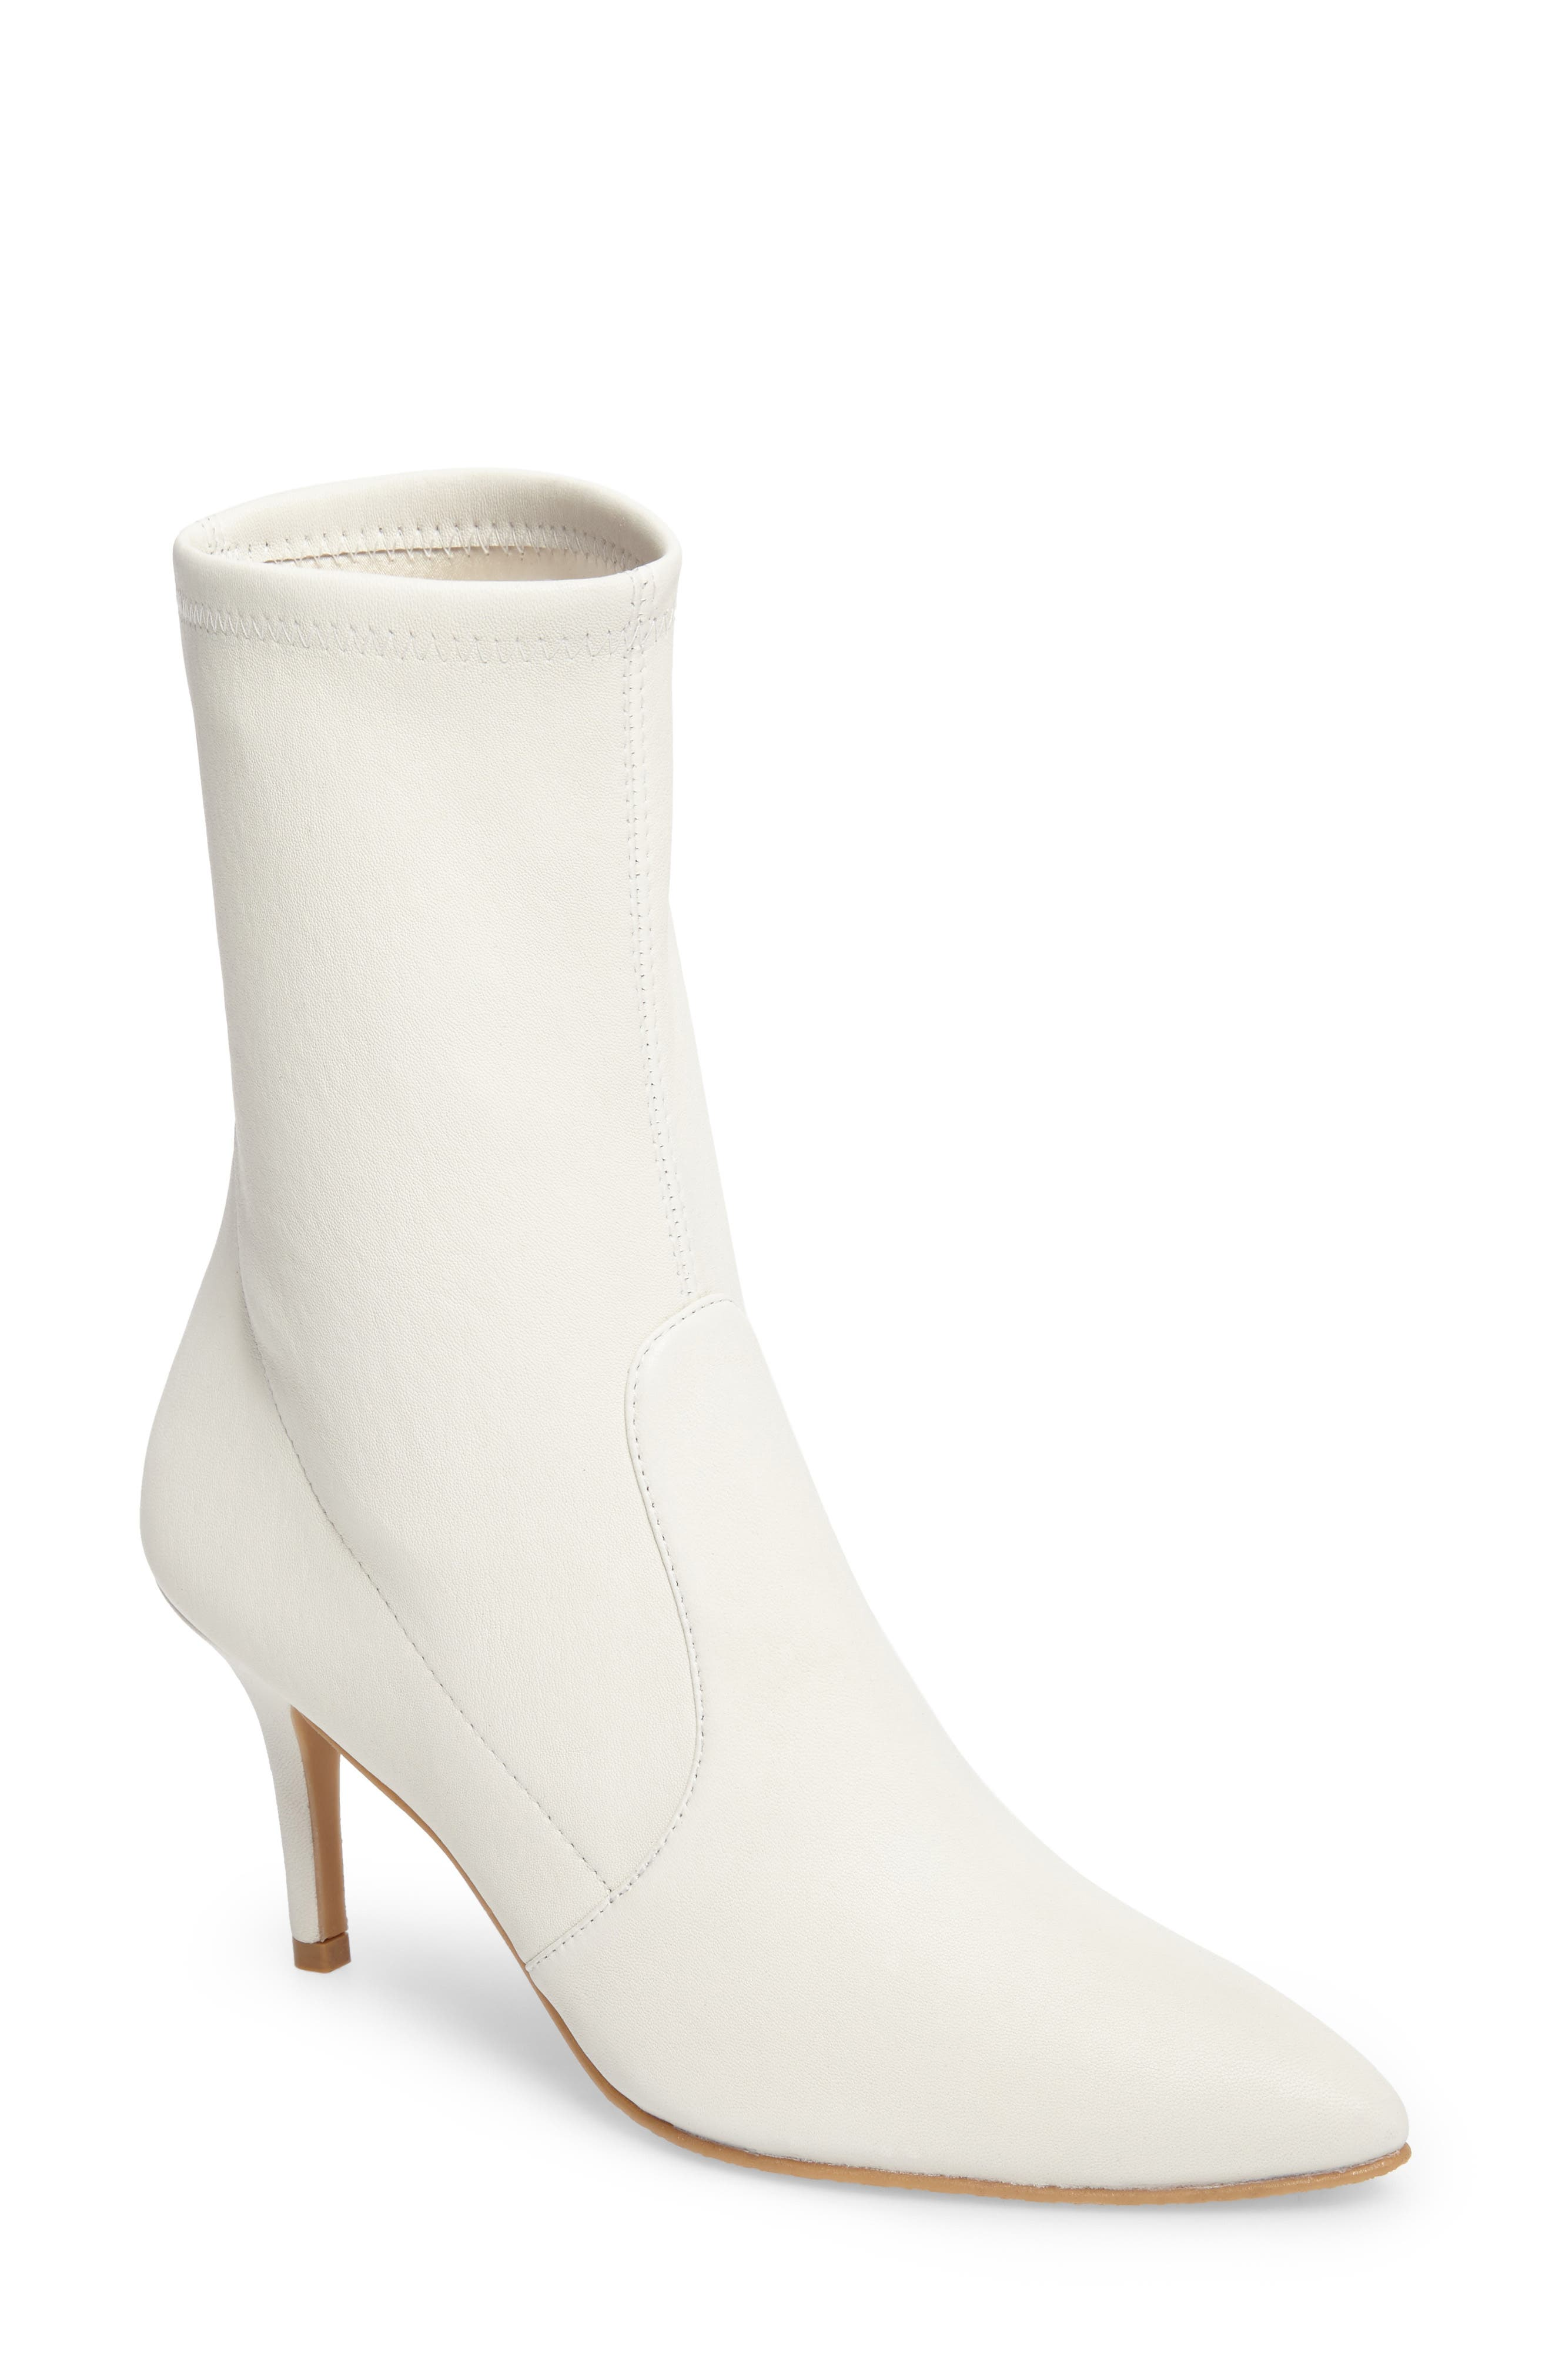 Alternate Image 1 Selected - Stuart Weitzman Cling Stretch Bootie (Women)